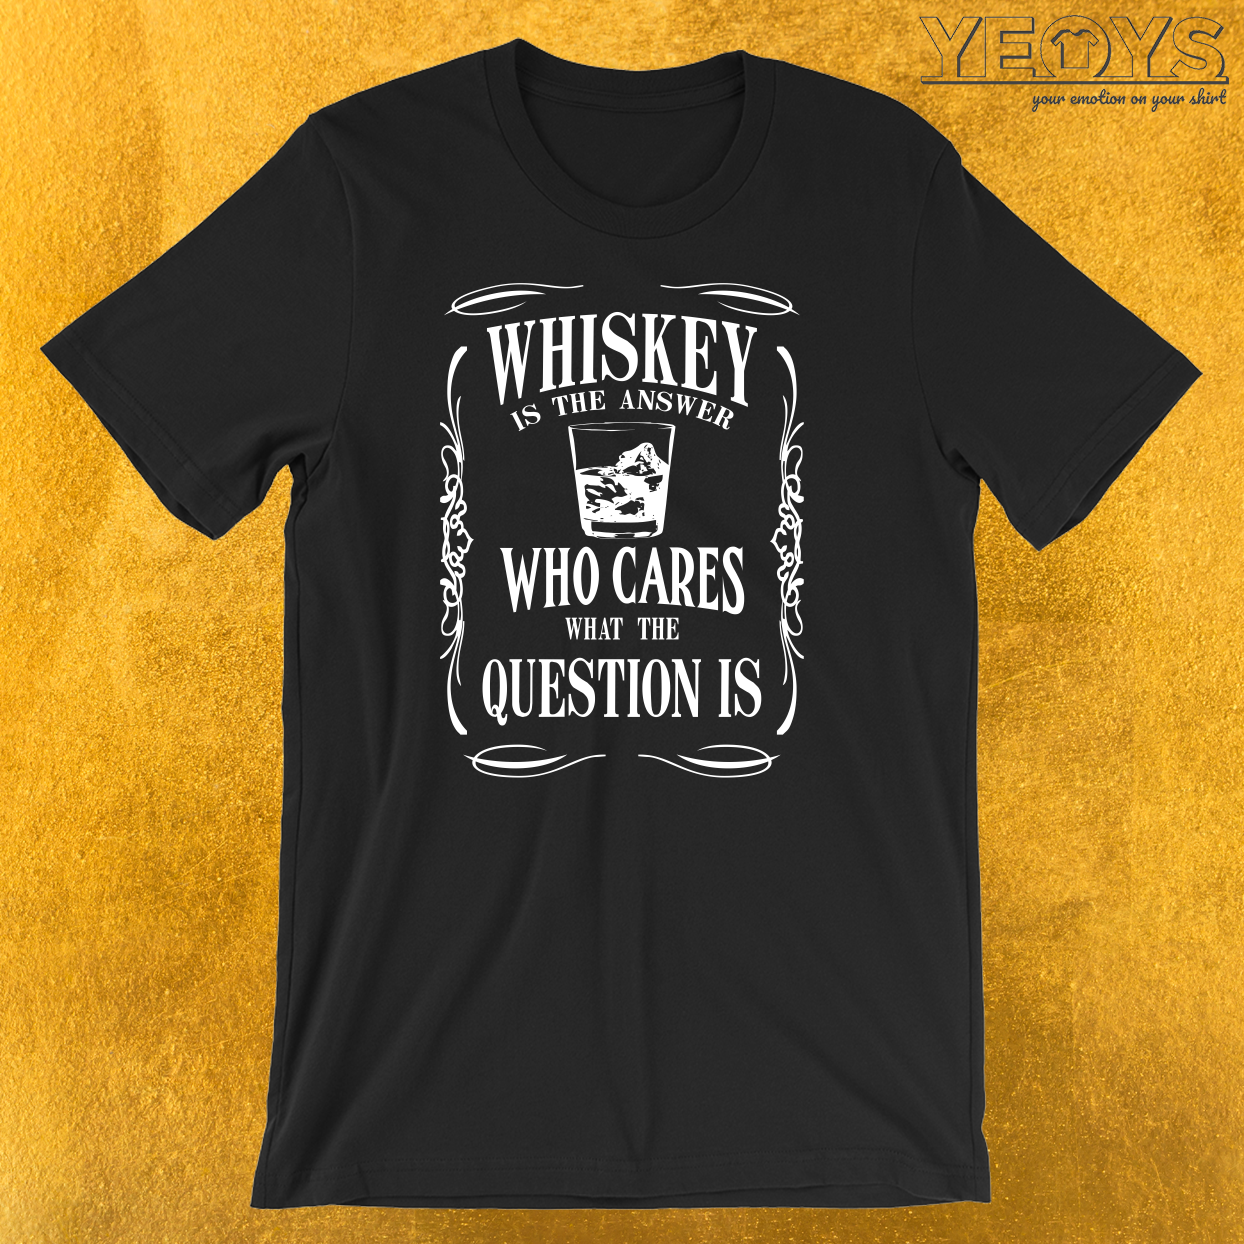 Whiskey Is The Answer T-Shirt